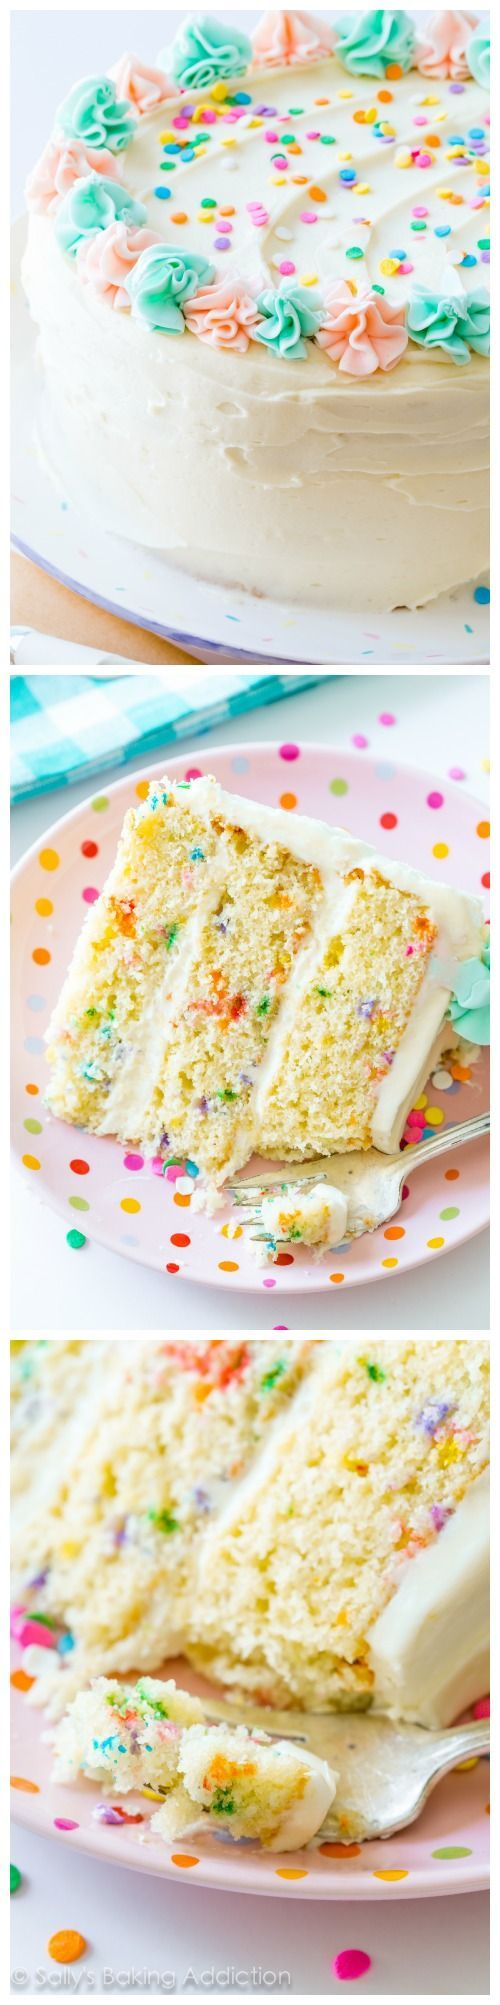 Funfetti Layer Cake is perfect for any celebration! Ditch the box mix and learn how to make it completely from scratch using this detailed homemade recipe!